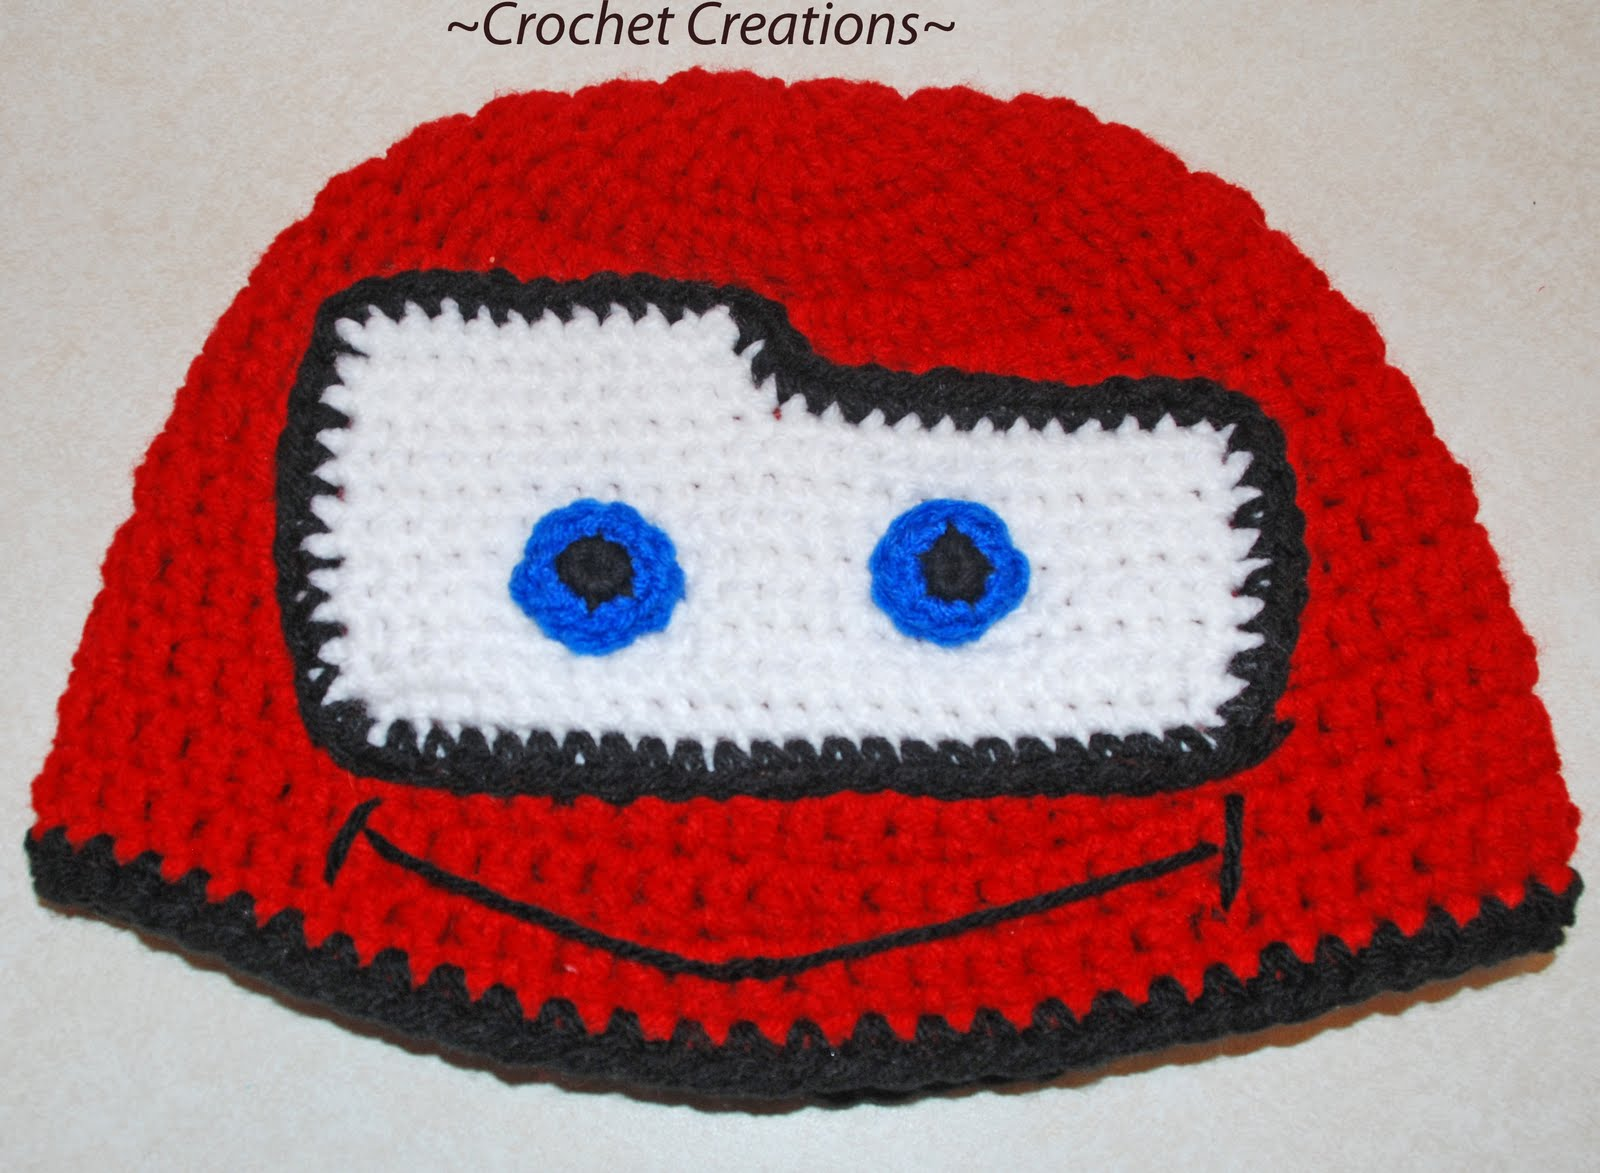 Pretty Crochet Potholder - Free Pattern